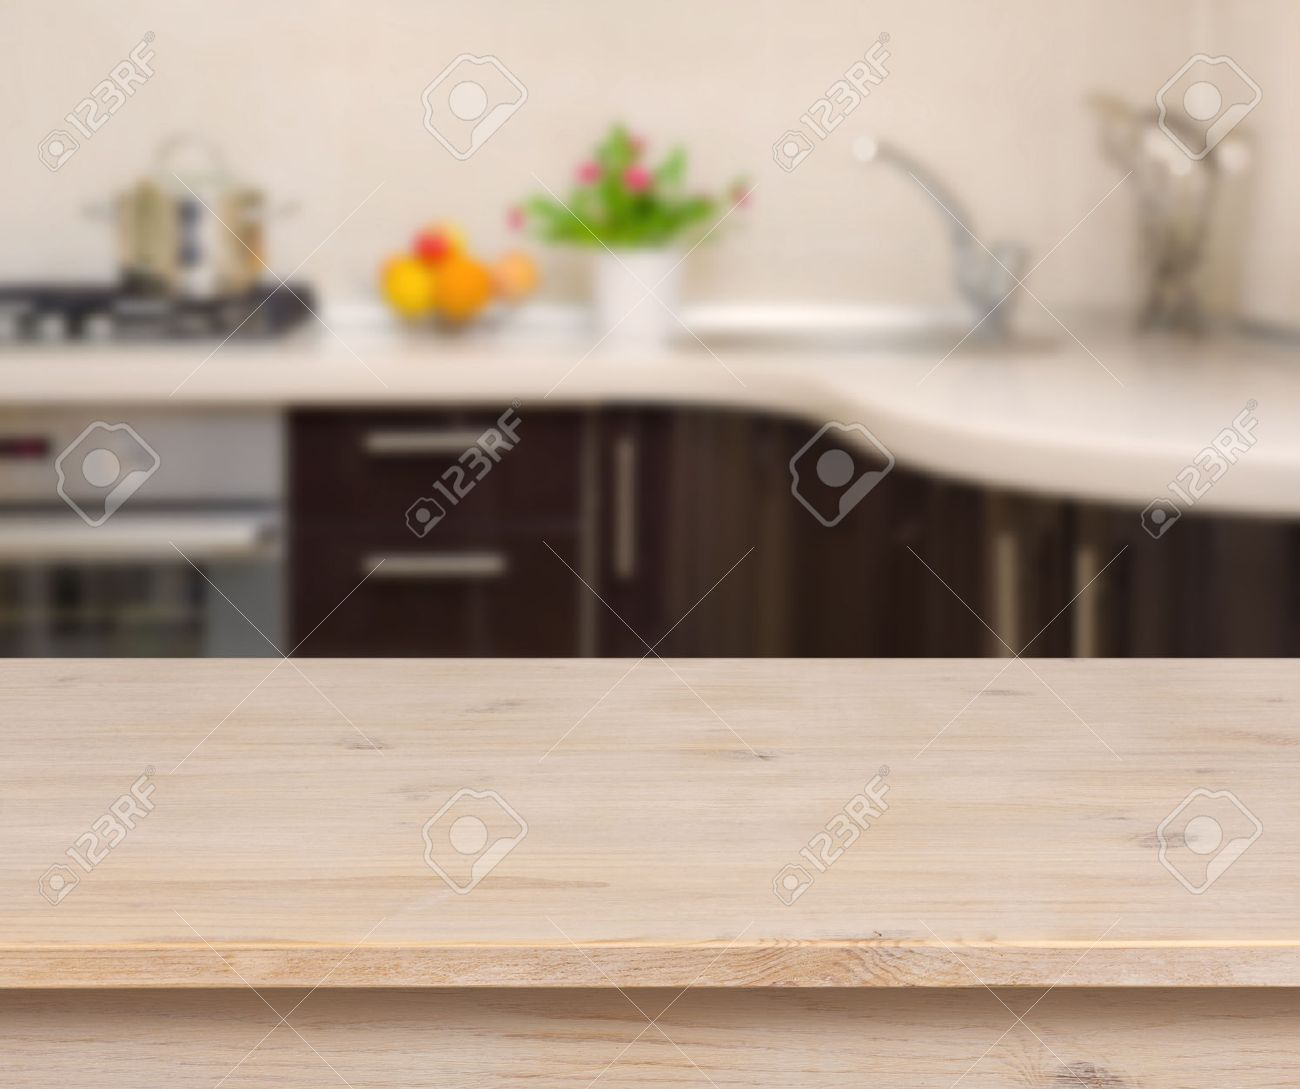 Kitchen Table Background Stunning Breakfast Table On Kitchen Interior Background Stock Photo Review